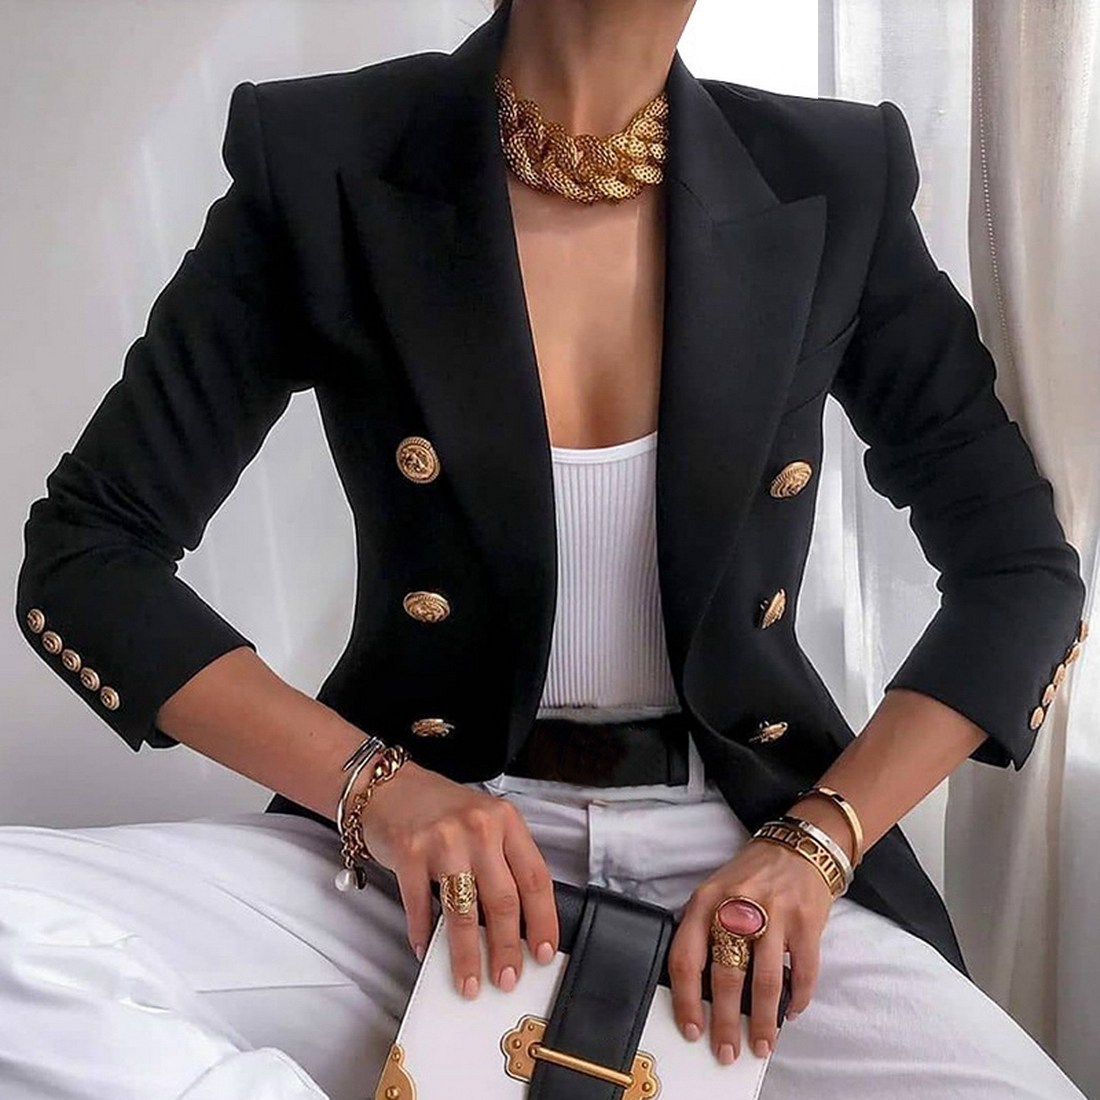 2020 New Fashion Blazer Women's Double-breasted Blazer Slim Fitted Jacket Office Dress